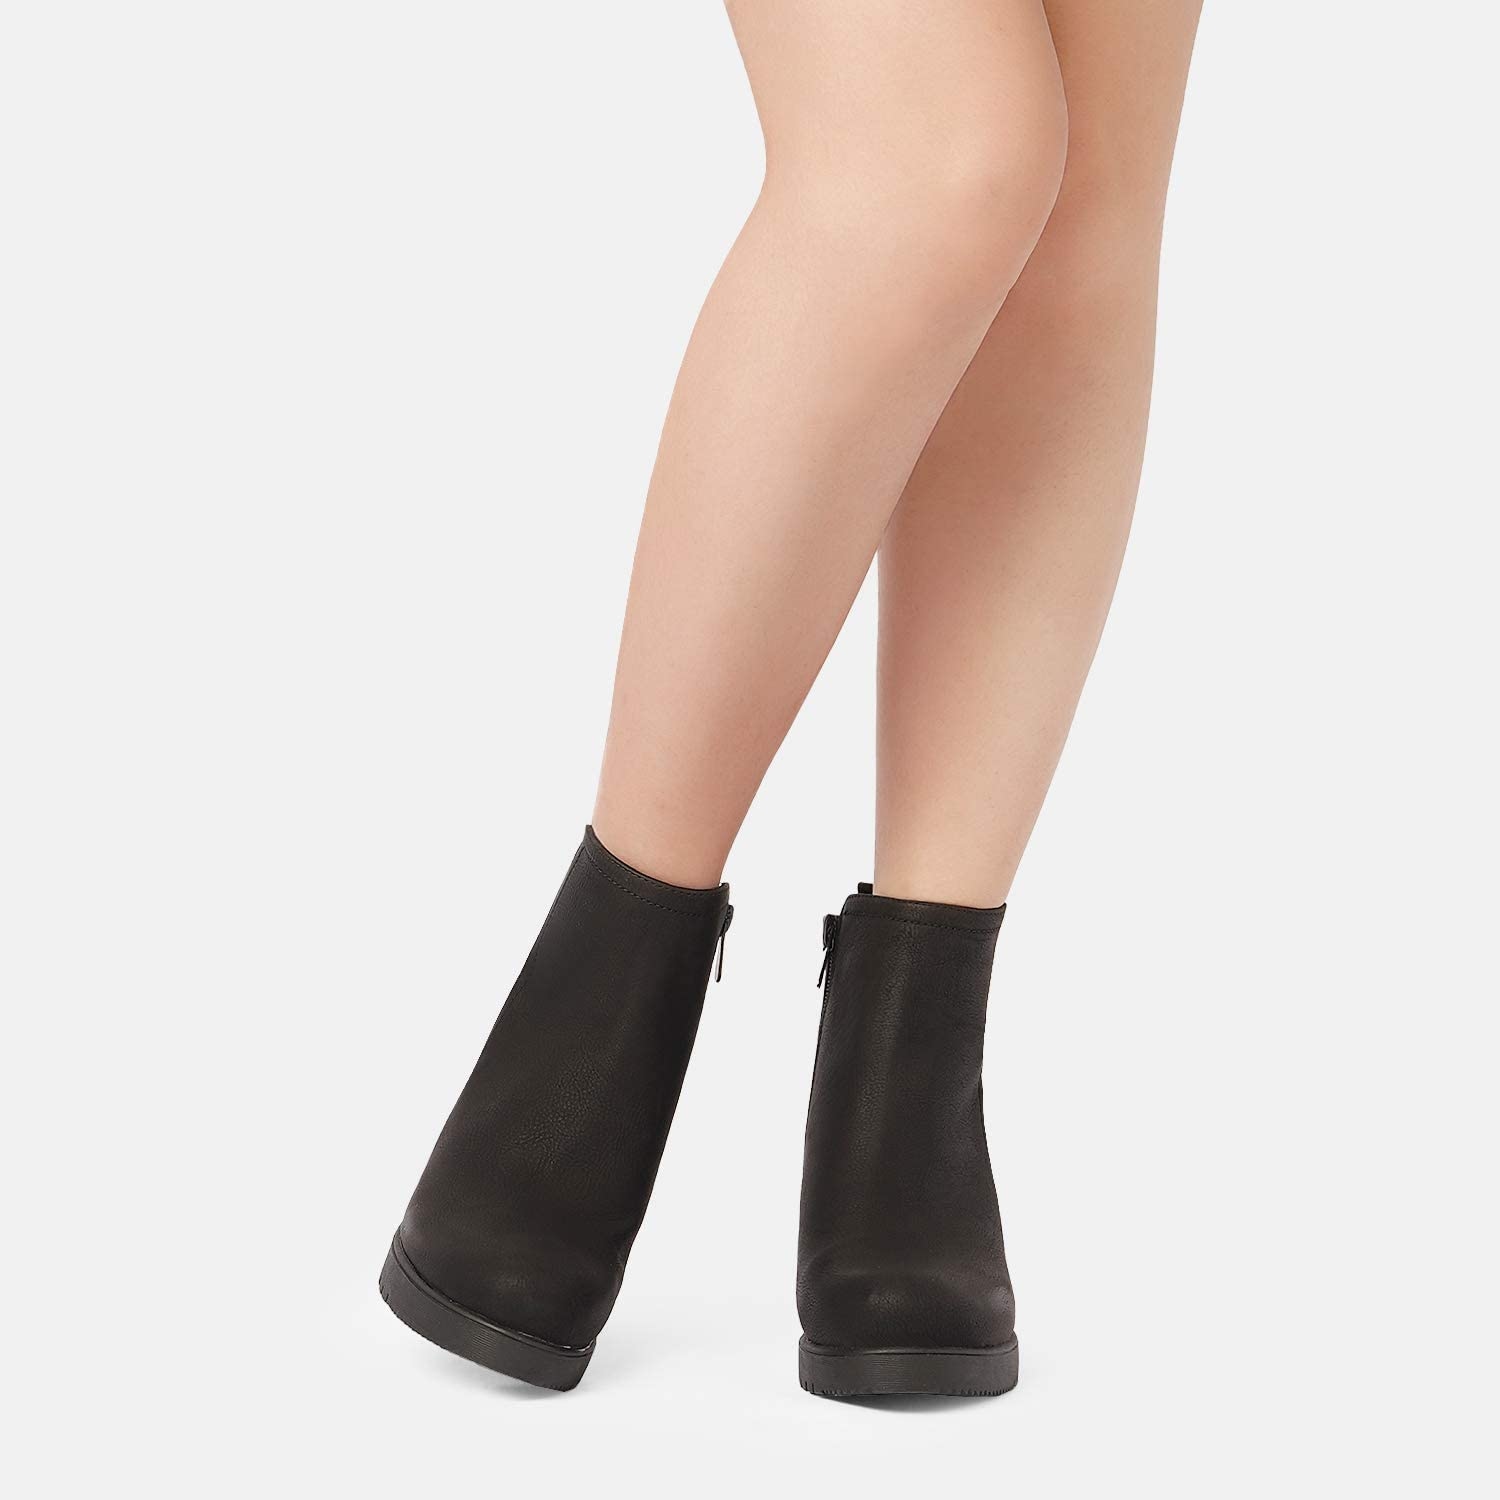 DREAM PAIRS Women's Low Heel Chunky Ankle Boots Winter Shoes